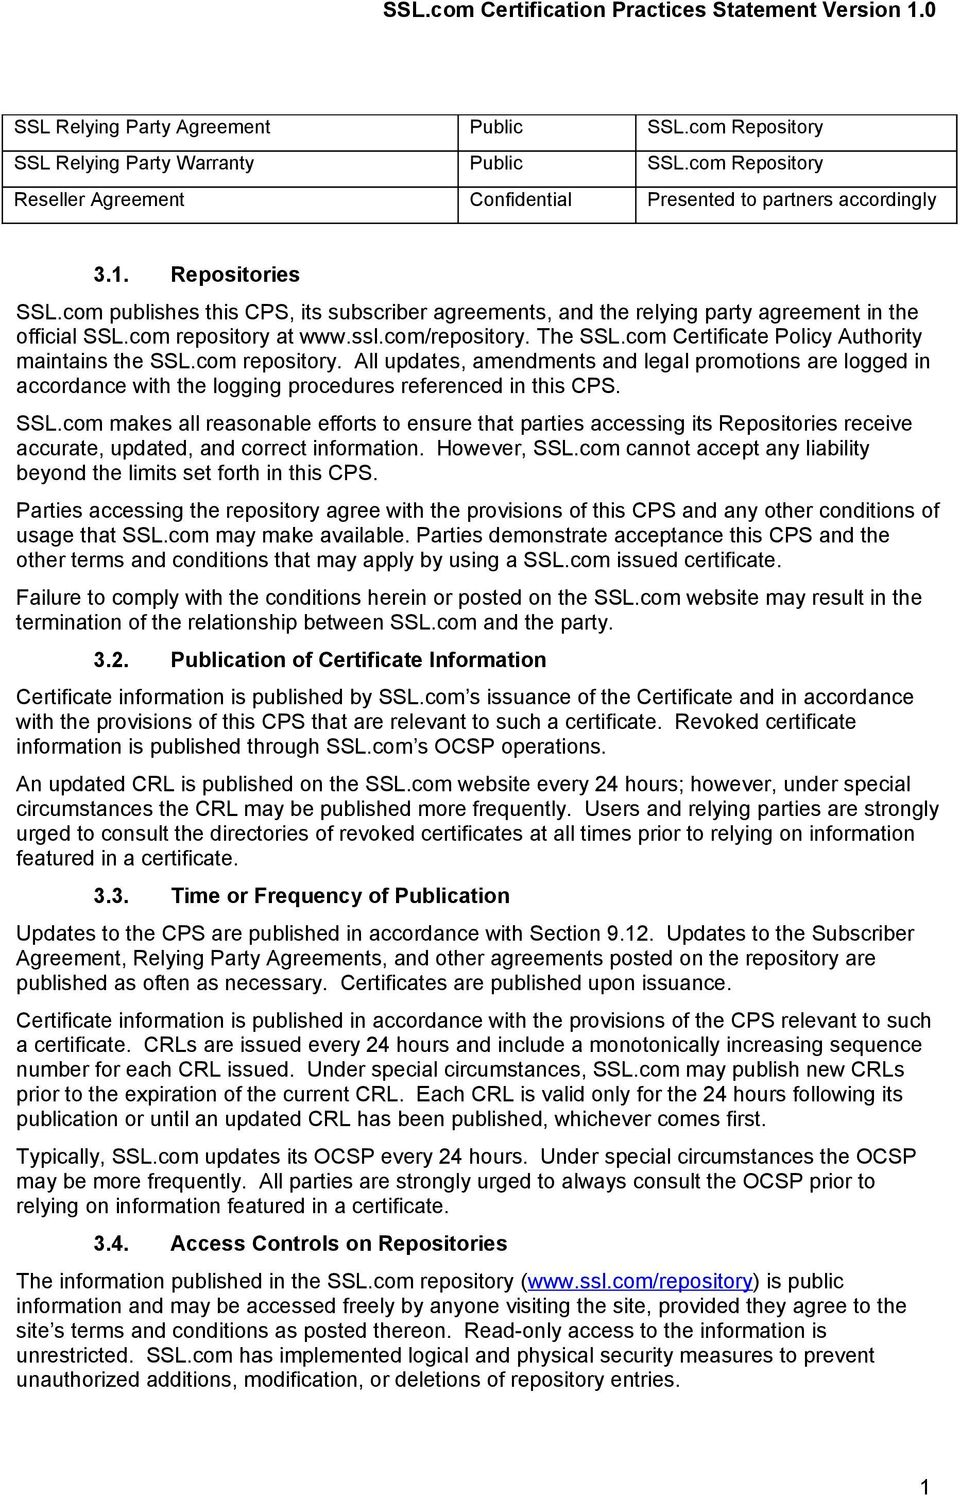 com Certificate Policy Authority maintains the SSL.com repository. All updates, amendments and legal promotions are logged in accordance with the logging procedures referenced in this CPS. SSL.com makes all reasonable efforts to ensure that parties accessing its Repositories receive accurate, updated, and correct information.